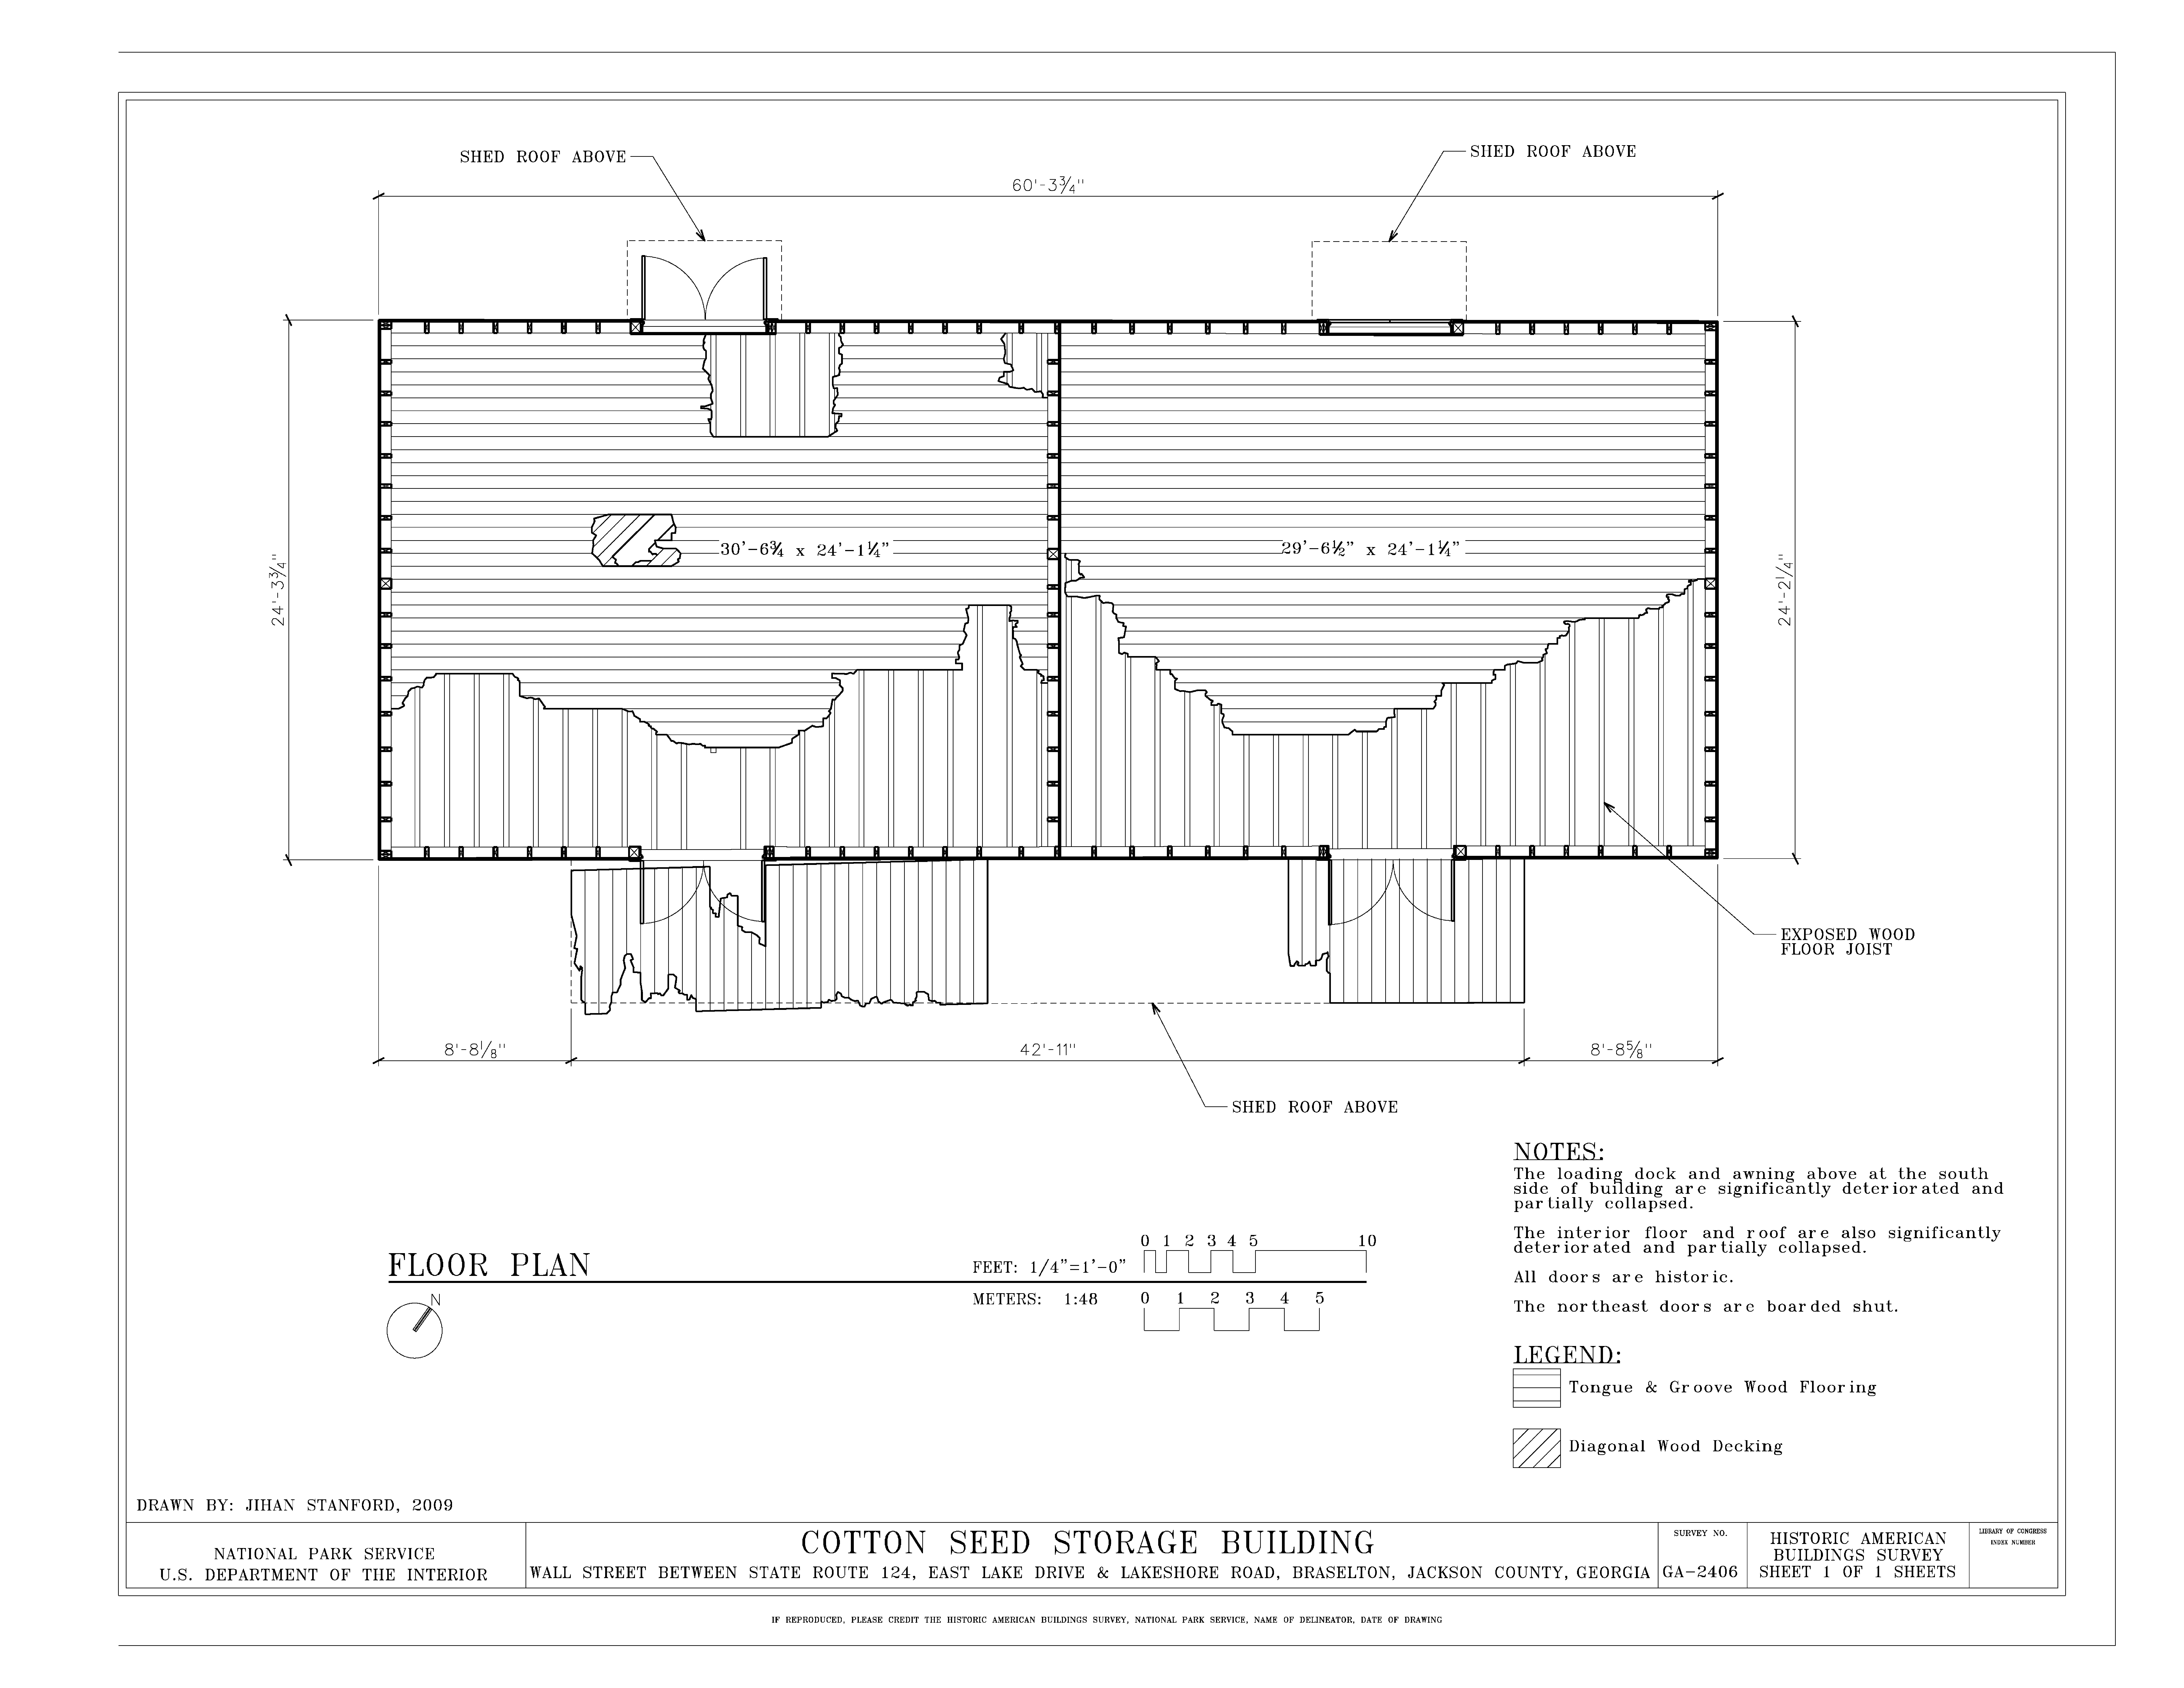 FileFloor Plan Cotton Seed Storage Building End Of Wall Street - Storage building floor plans